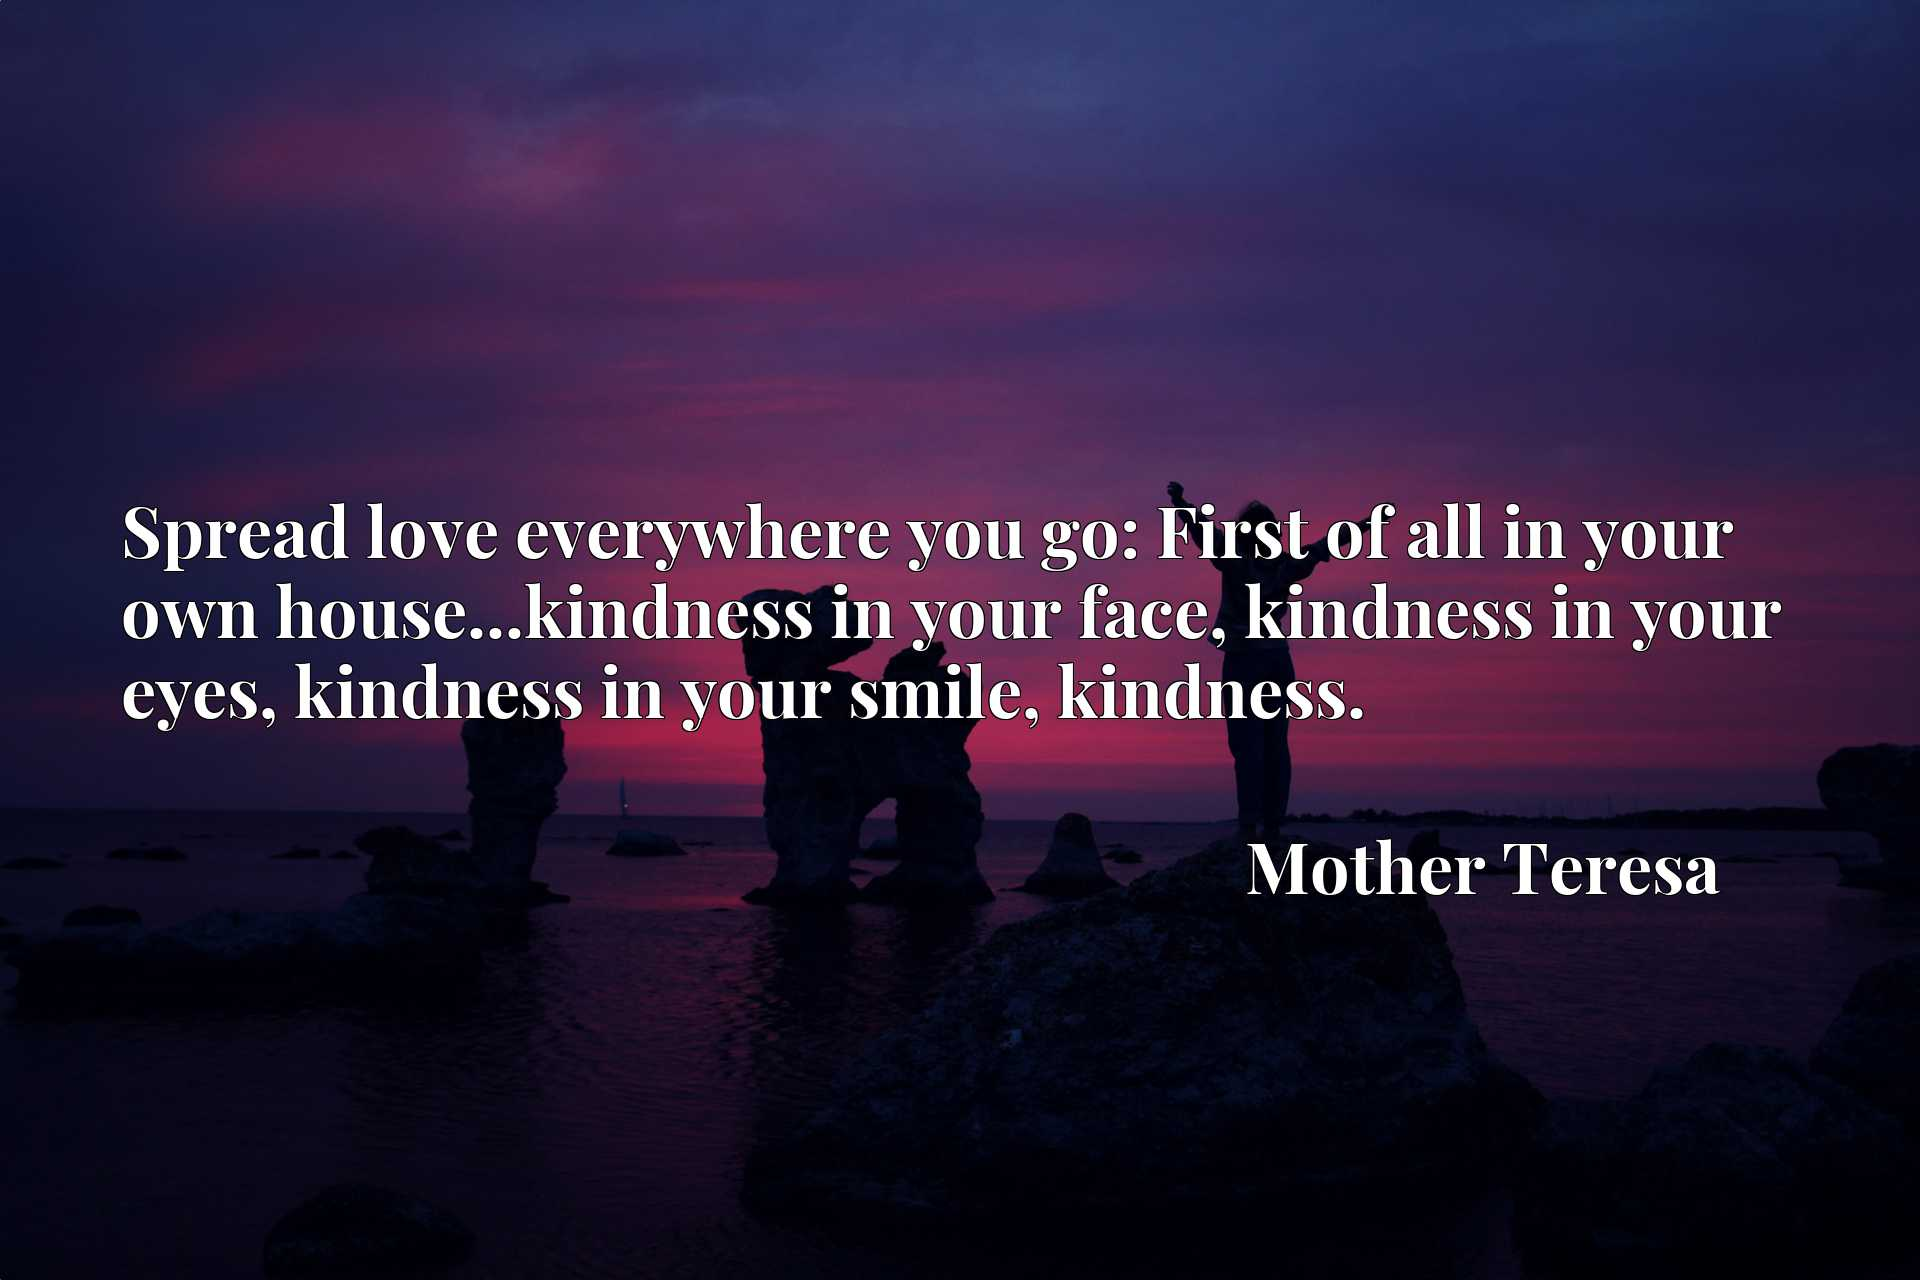 Spread love everywhere you go: First of all in your own house...kindness in your face, kindness in your eyes, kindness in your smile, kindness.